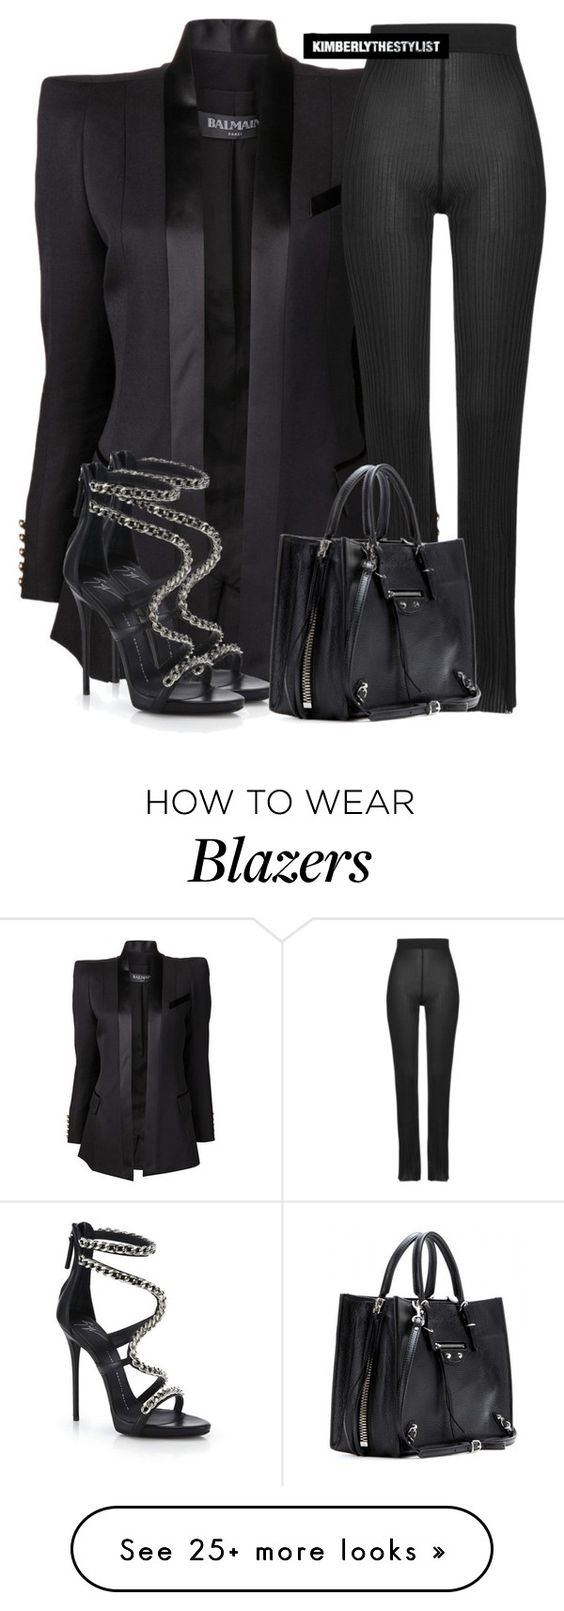 """""""Untitled #2567"""" by whokd on Polyvore featuring Balmain, Giuseppe Zanotti, Balenciaga, women's clothing, women, female, woman, misses and juniors"""